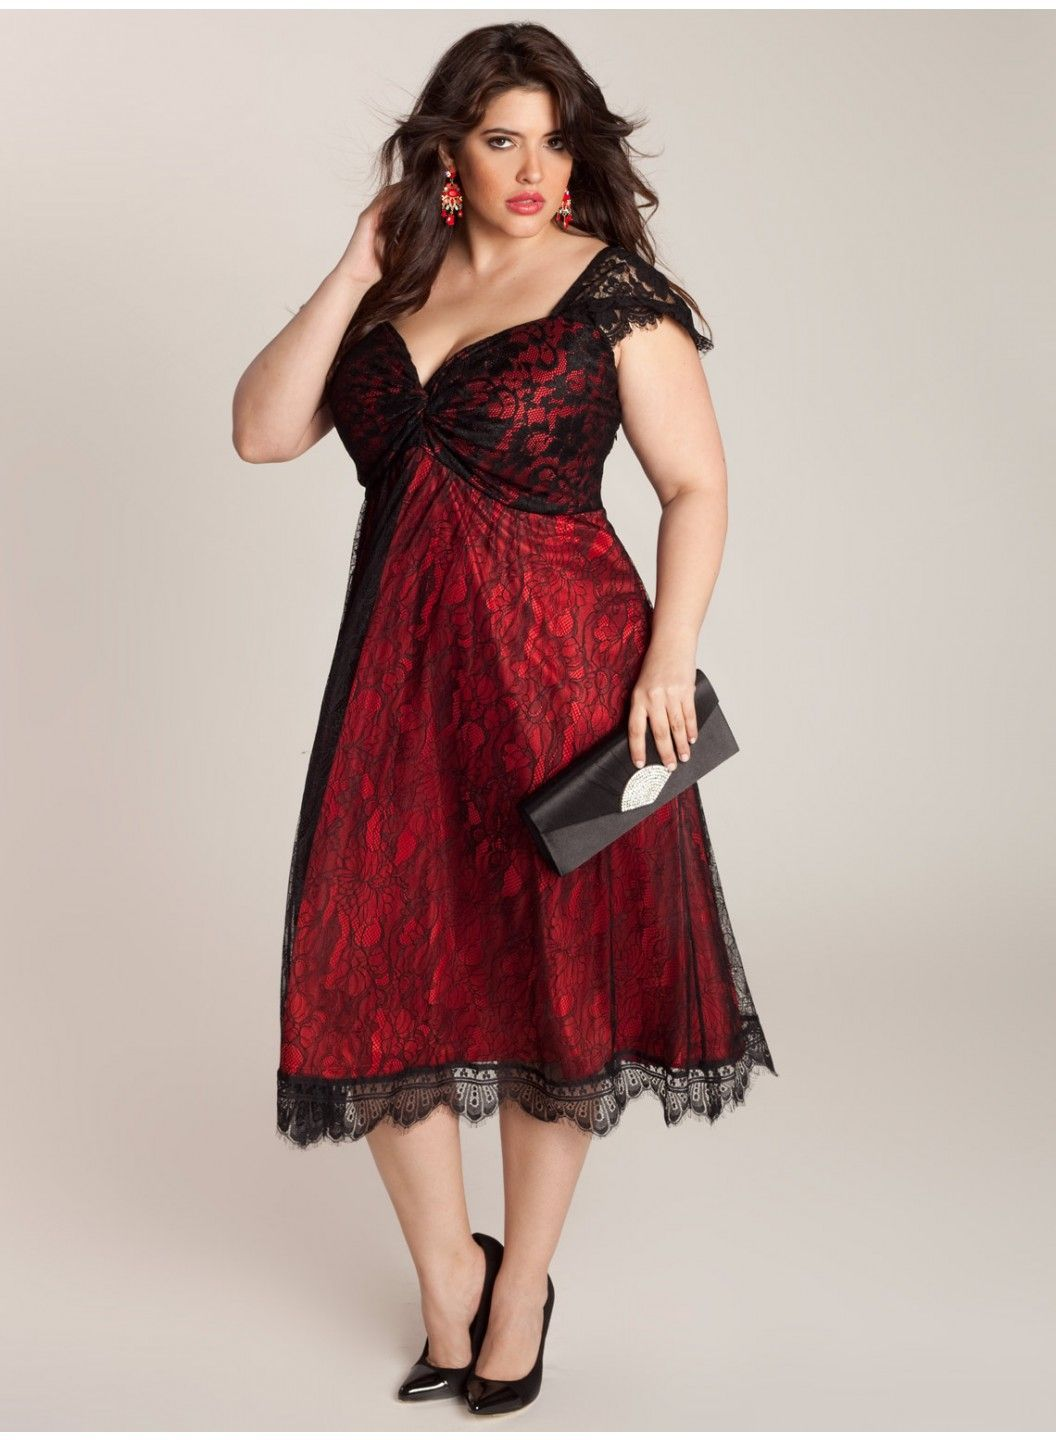 Make a Careful Choice of Your Plus Size Special Occasion Dresses